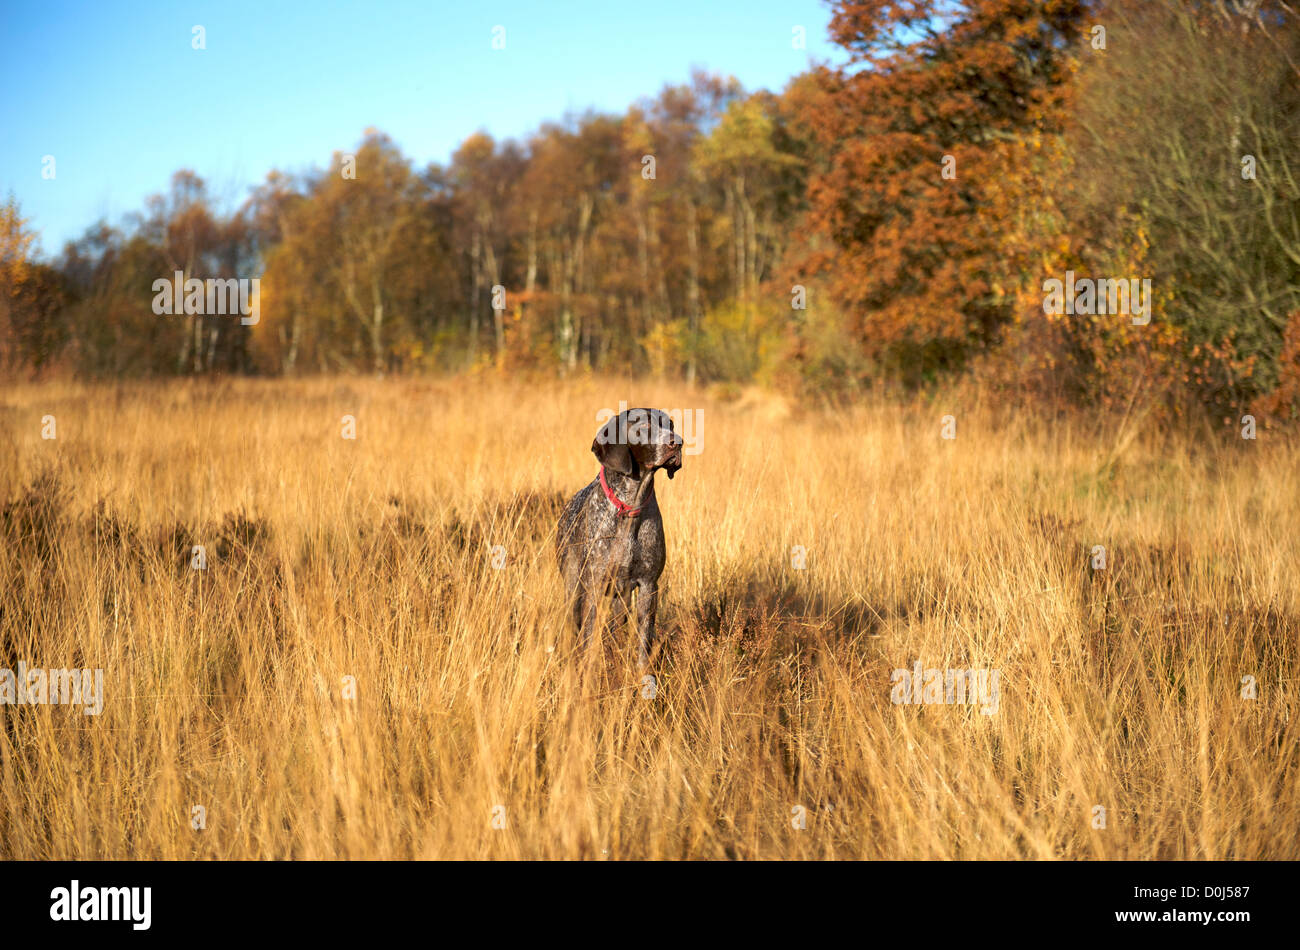 A German Shorthaired Pointer working in the long grass - Stock Image